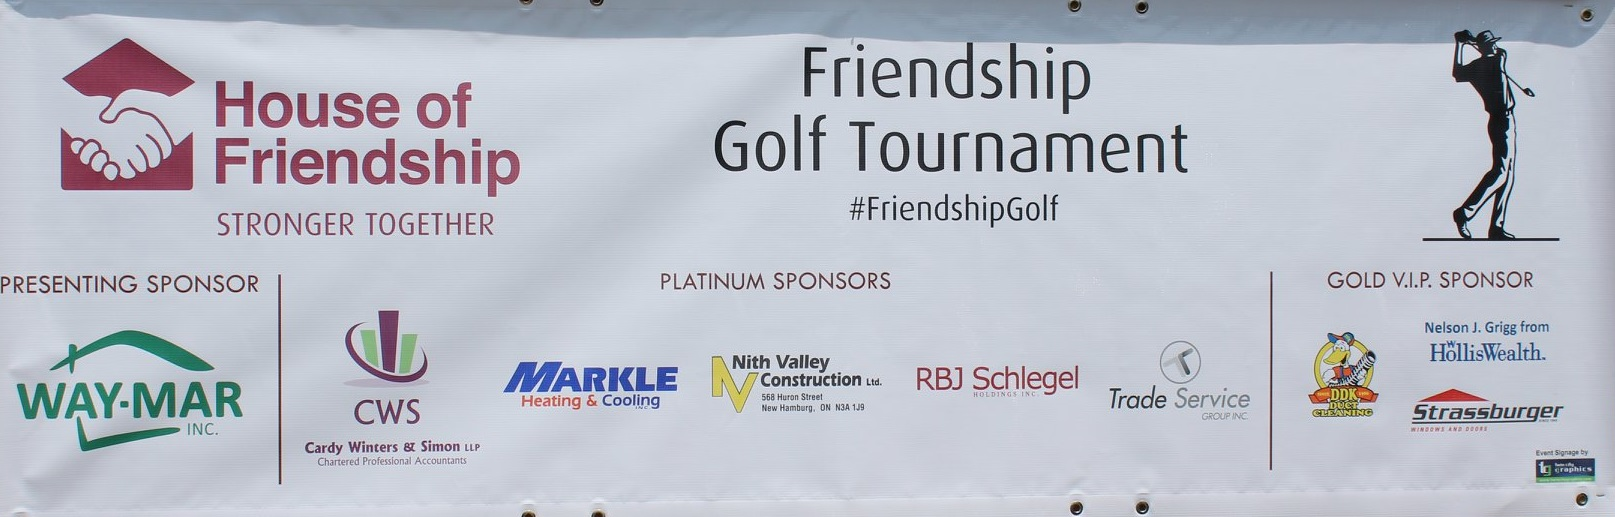 Friendship Golf 2019